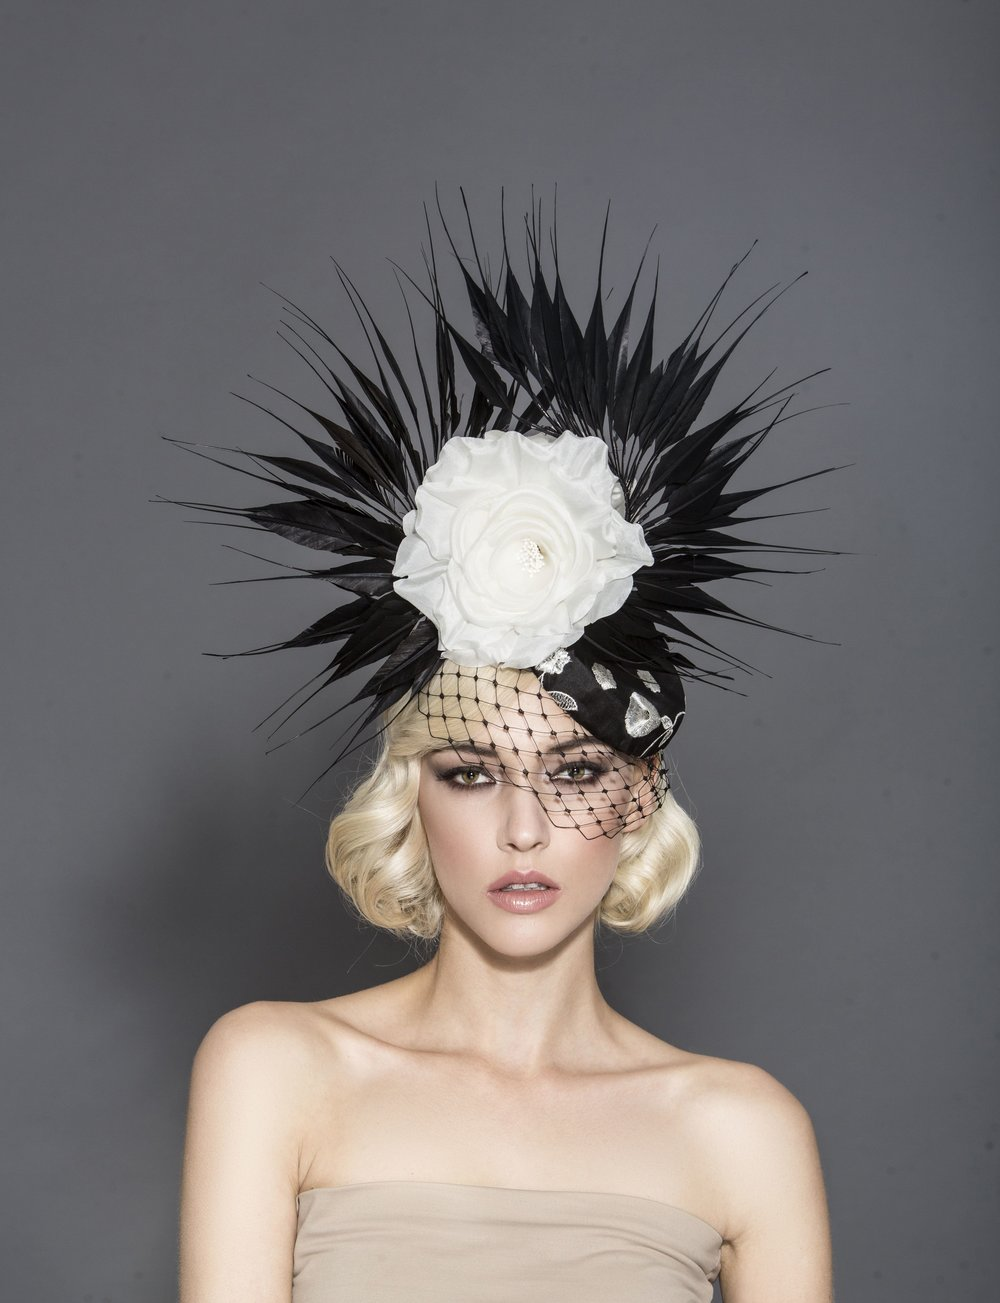 Hat designer: Arturo Rios  Photographer: Mark Sacro  Model: Stefanie Michova  Makeup: Teodoro De Jesus  Hair: Tuyen Tran